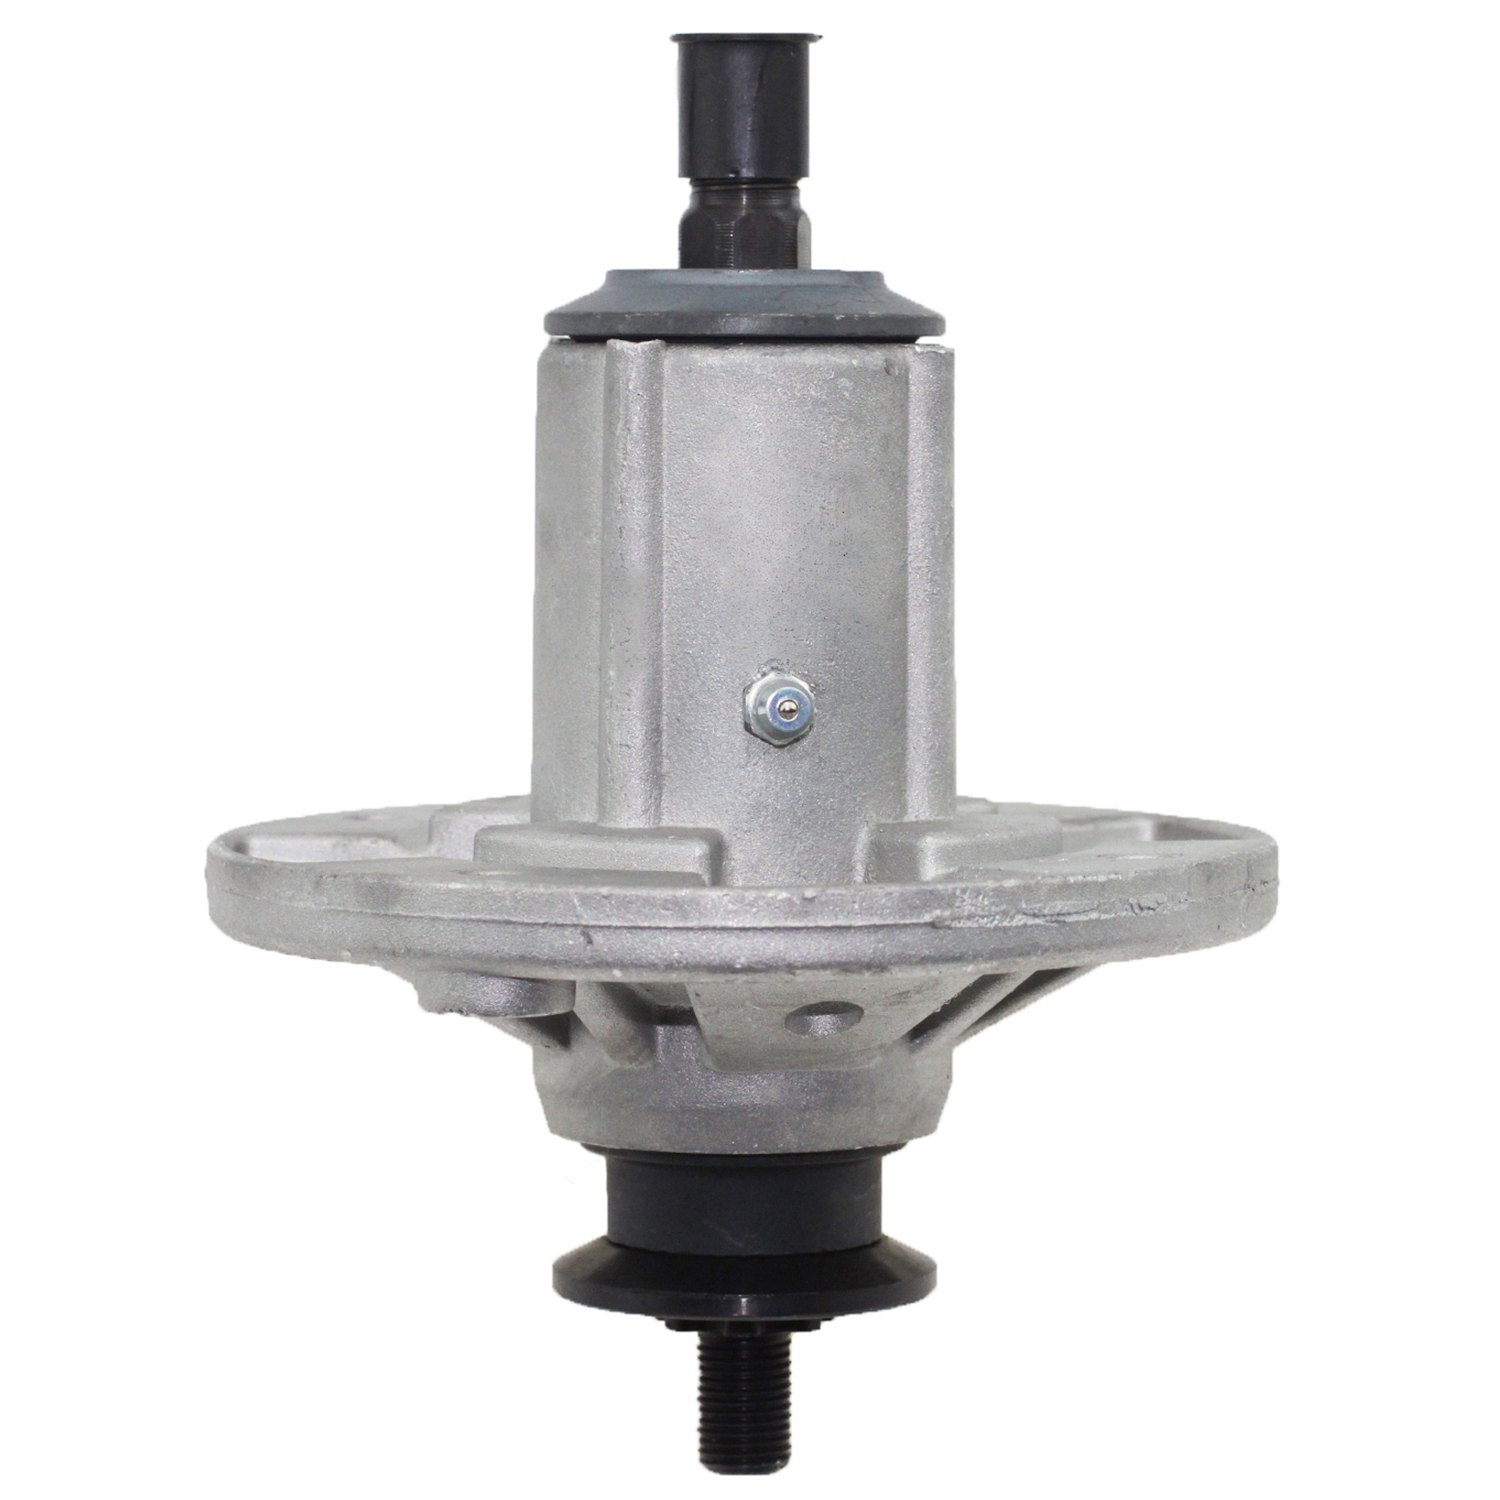 Replacement mower spindle assy for Oregon 82-358, John Deere AM136733, AM143469, AM137097